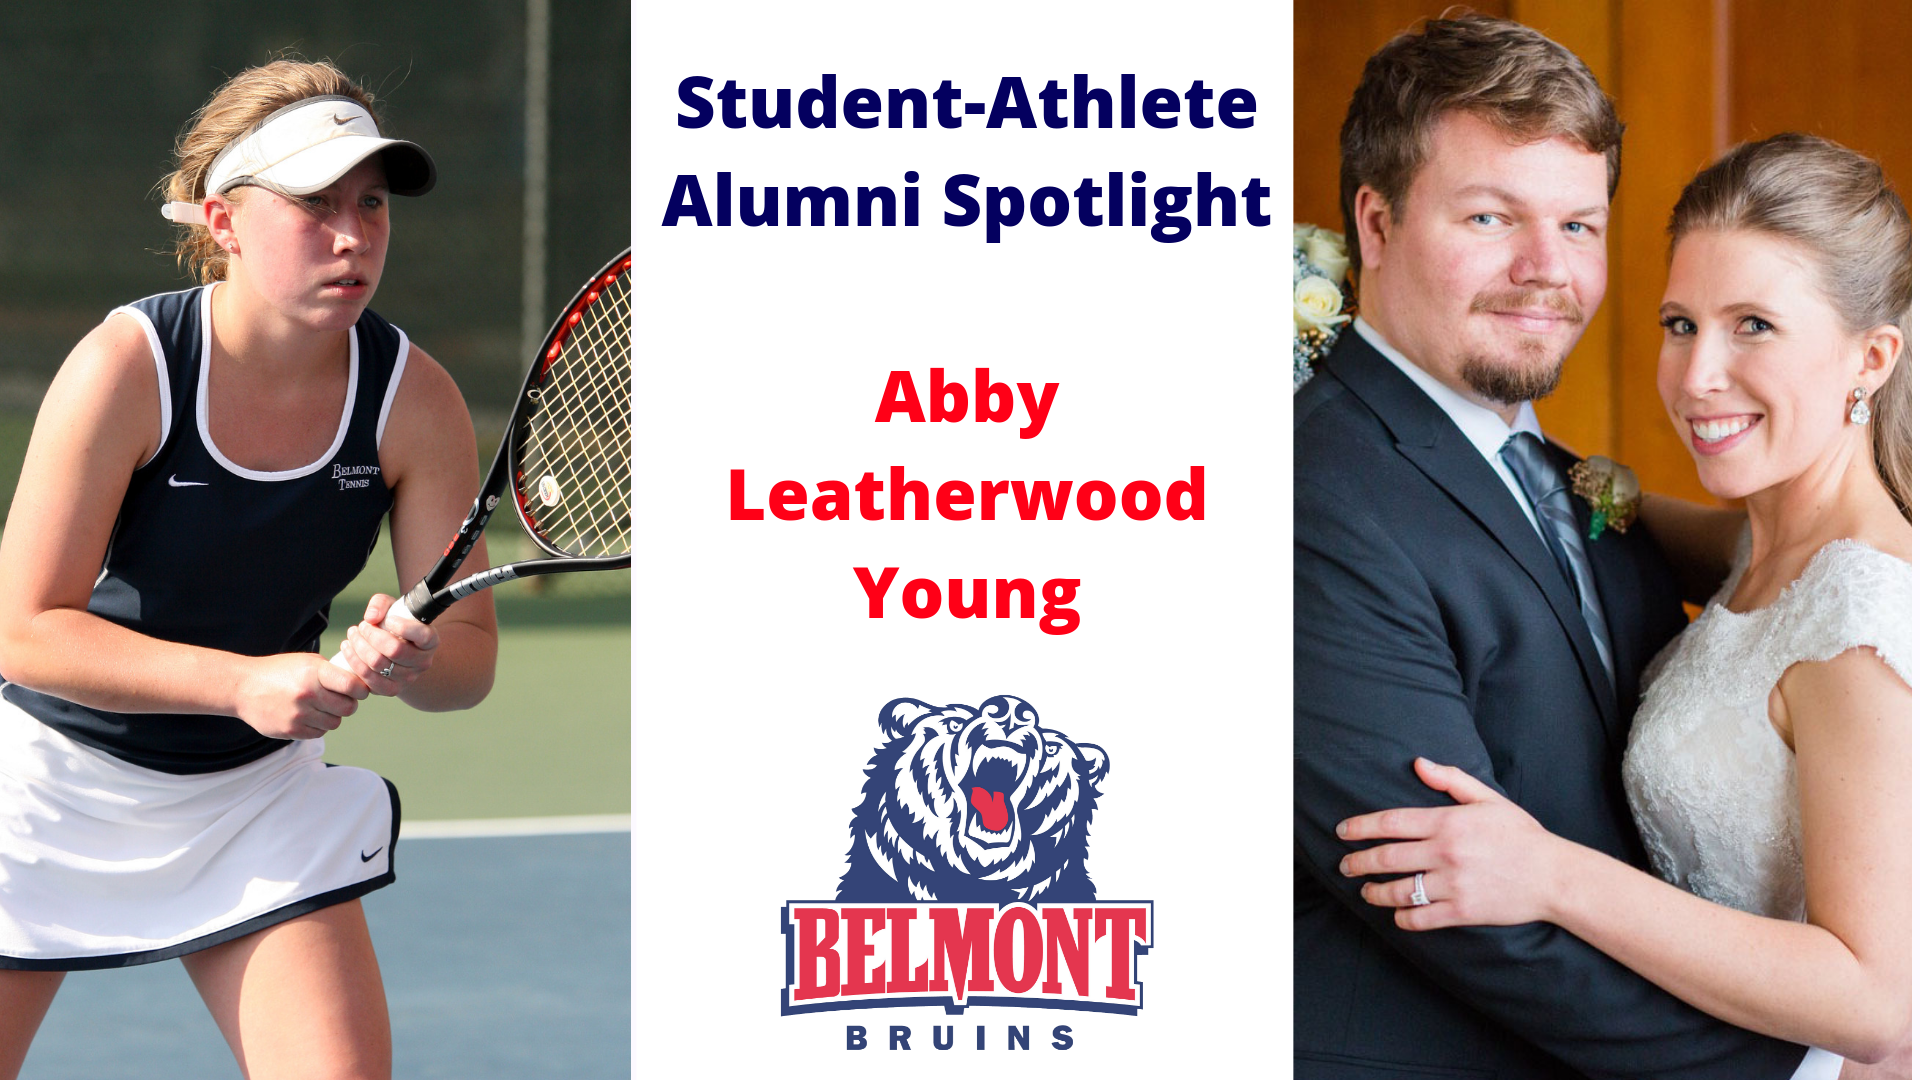 Abby Leatherwood Young